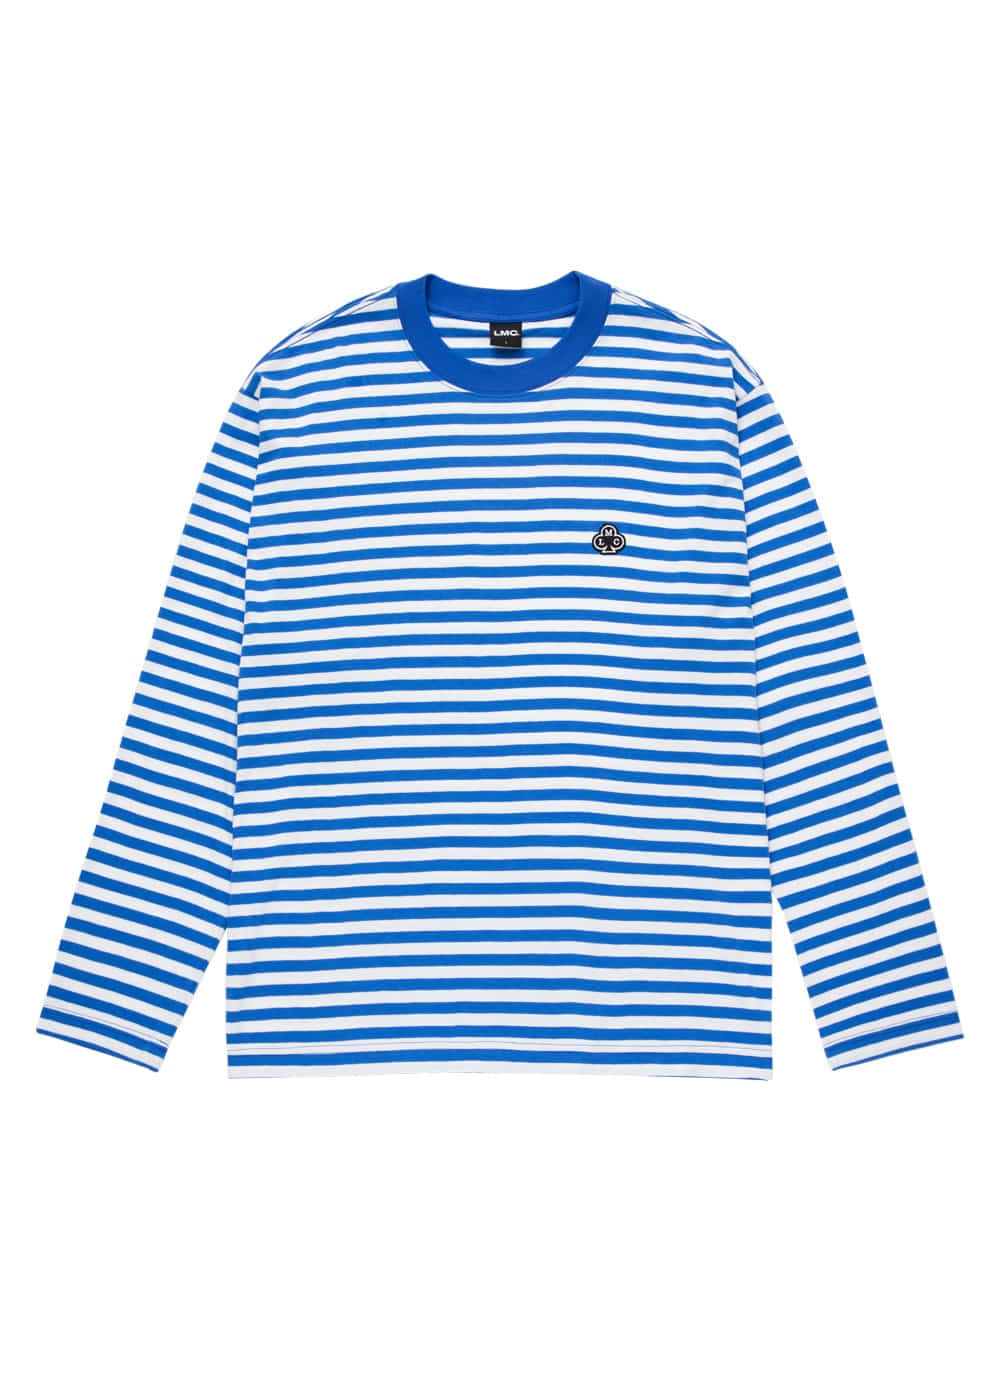 LMC CLUB STRIPE LONG SLV TEE blue